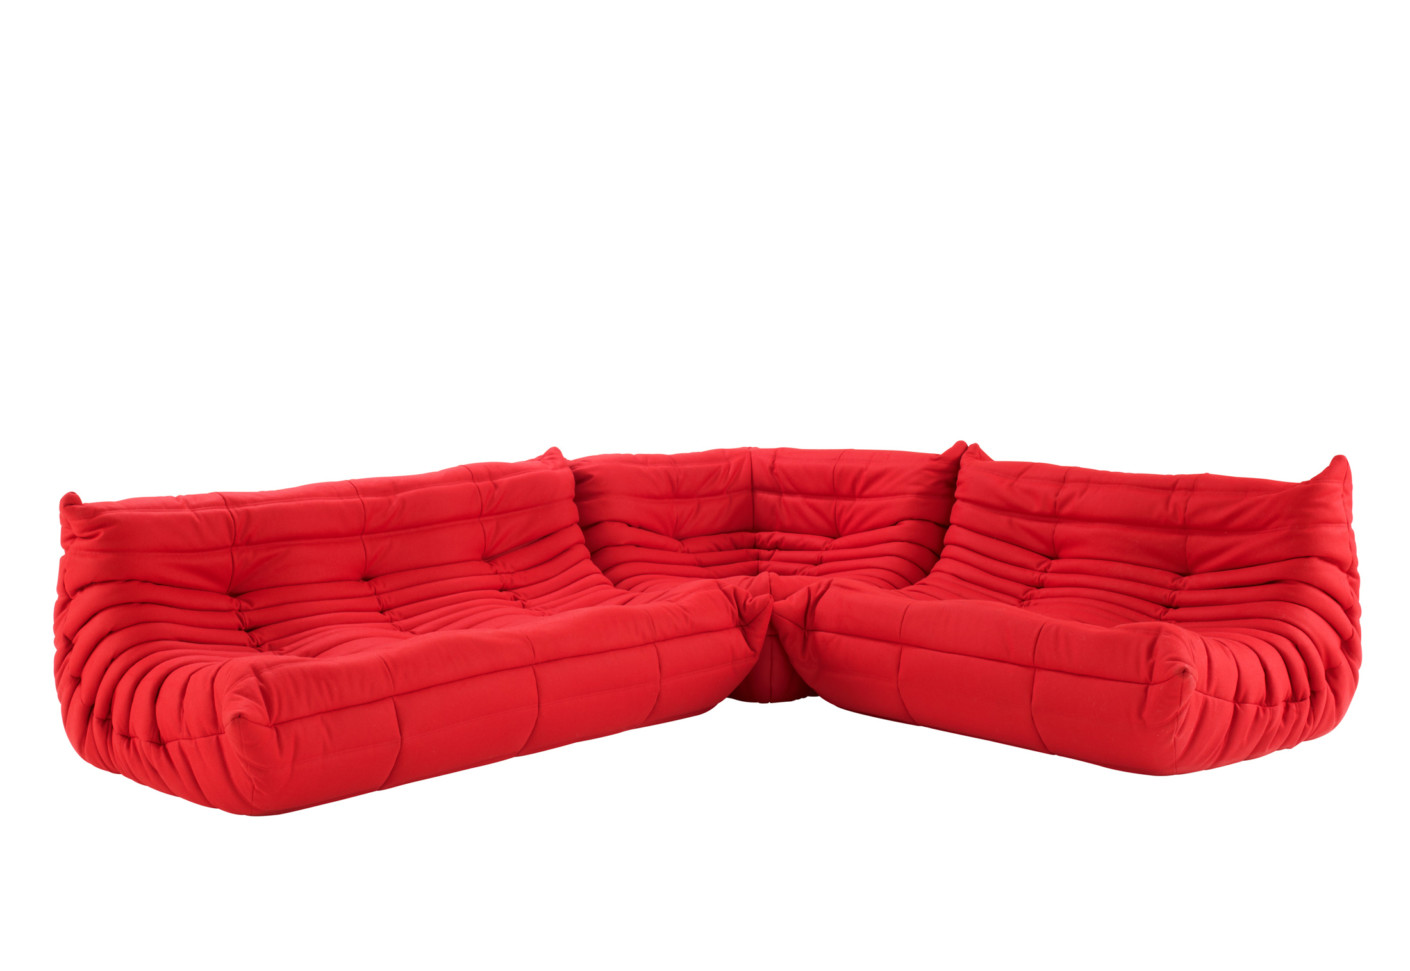 togo sofa 3 seater by ligne roset stylepark. Black Bedroom Furniture Sets. Home Design Ideas